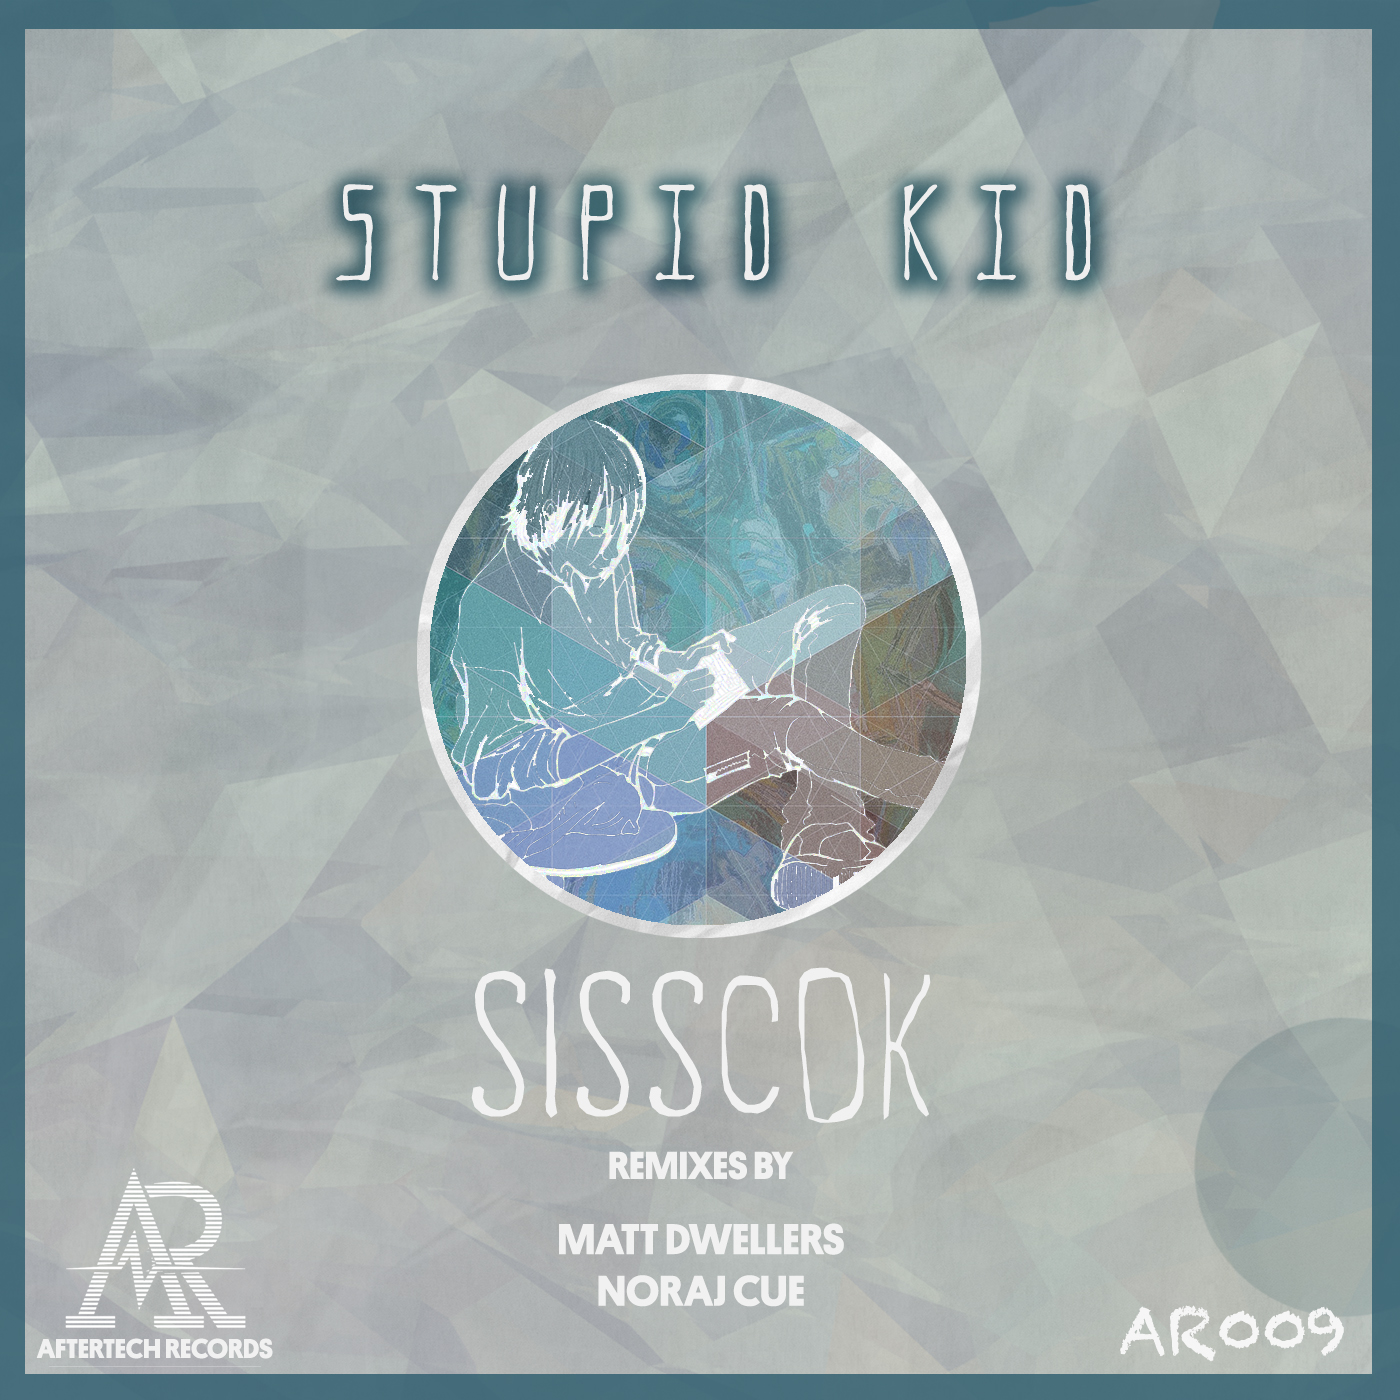 Sisscok Aftertech Records stupidKid